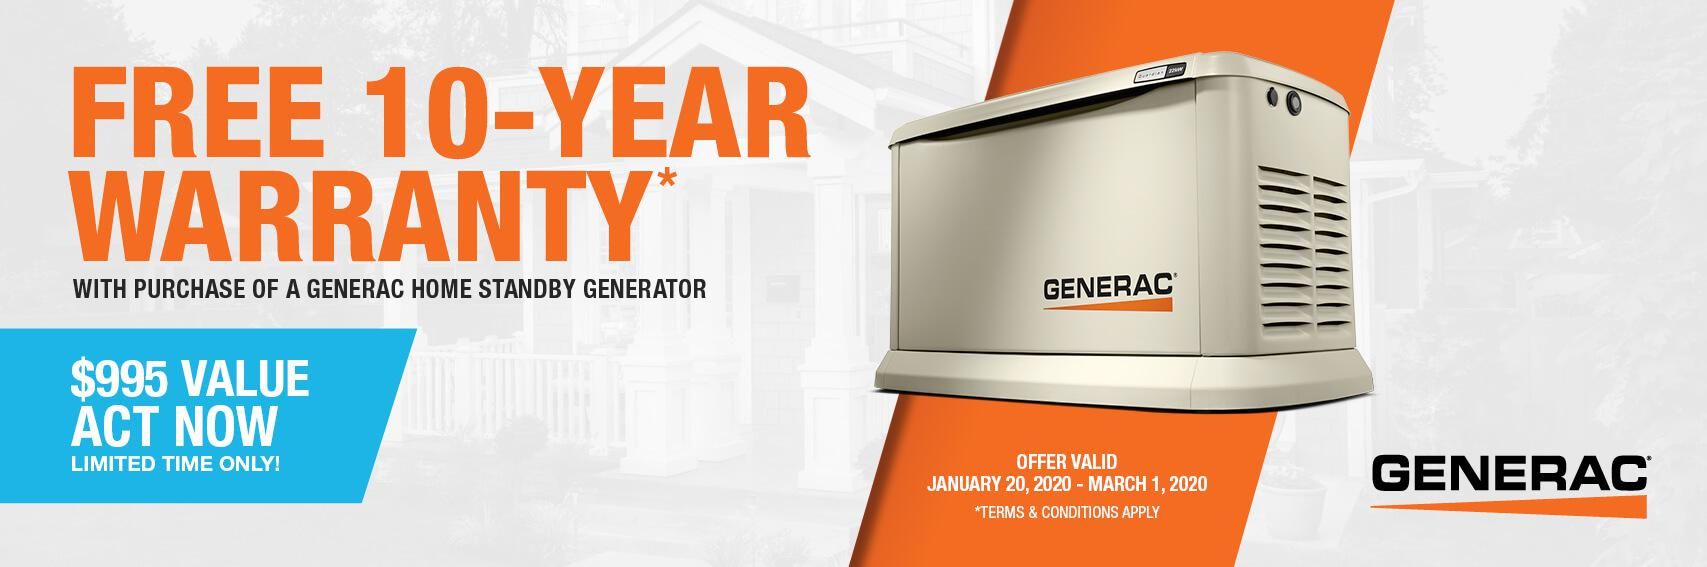 Homestandby Generator Deal | Warranty Offer | Generac Dealer | EWING, NJ